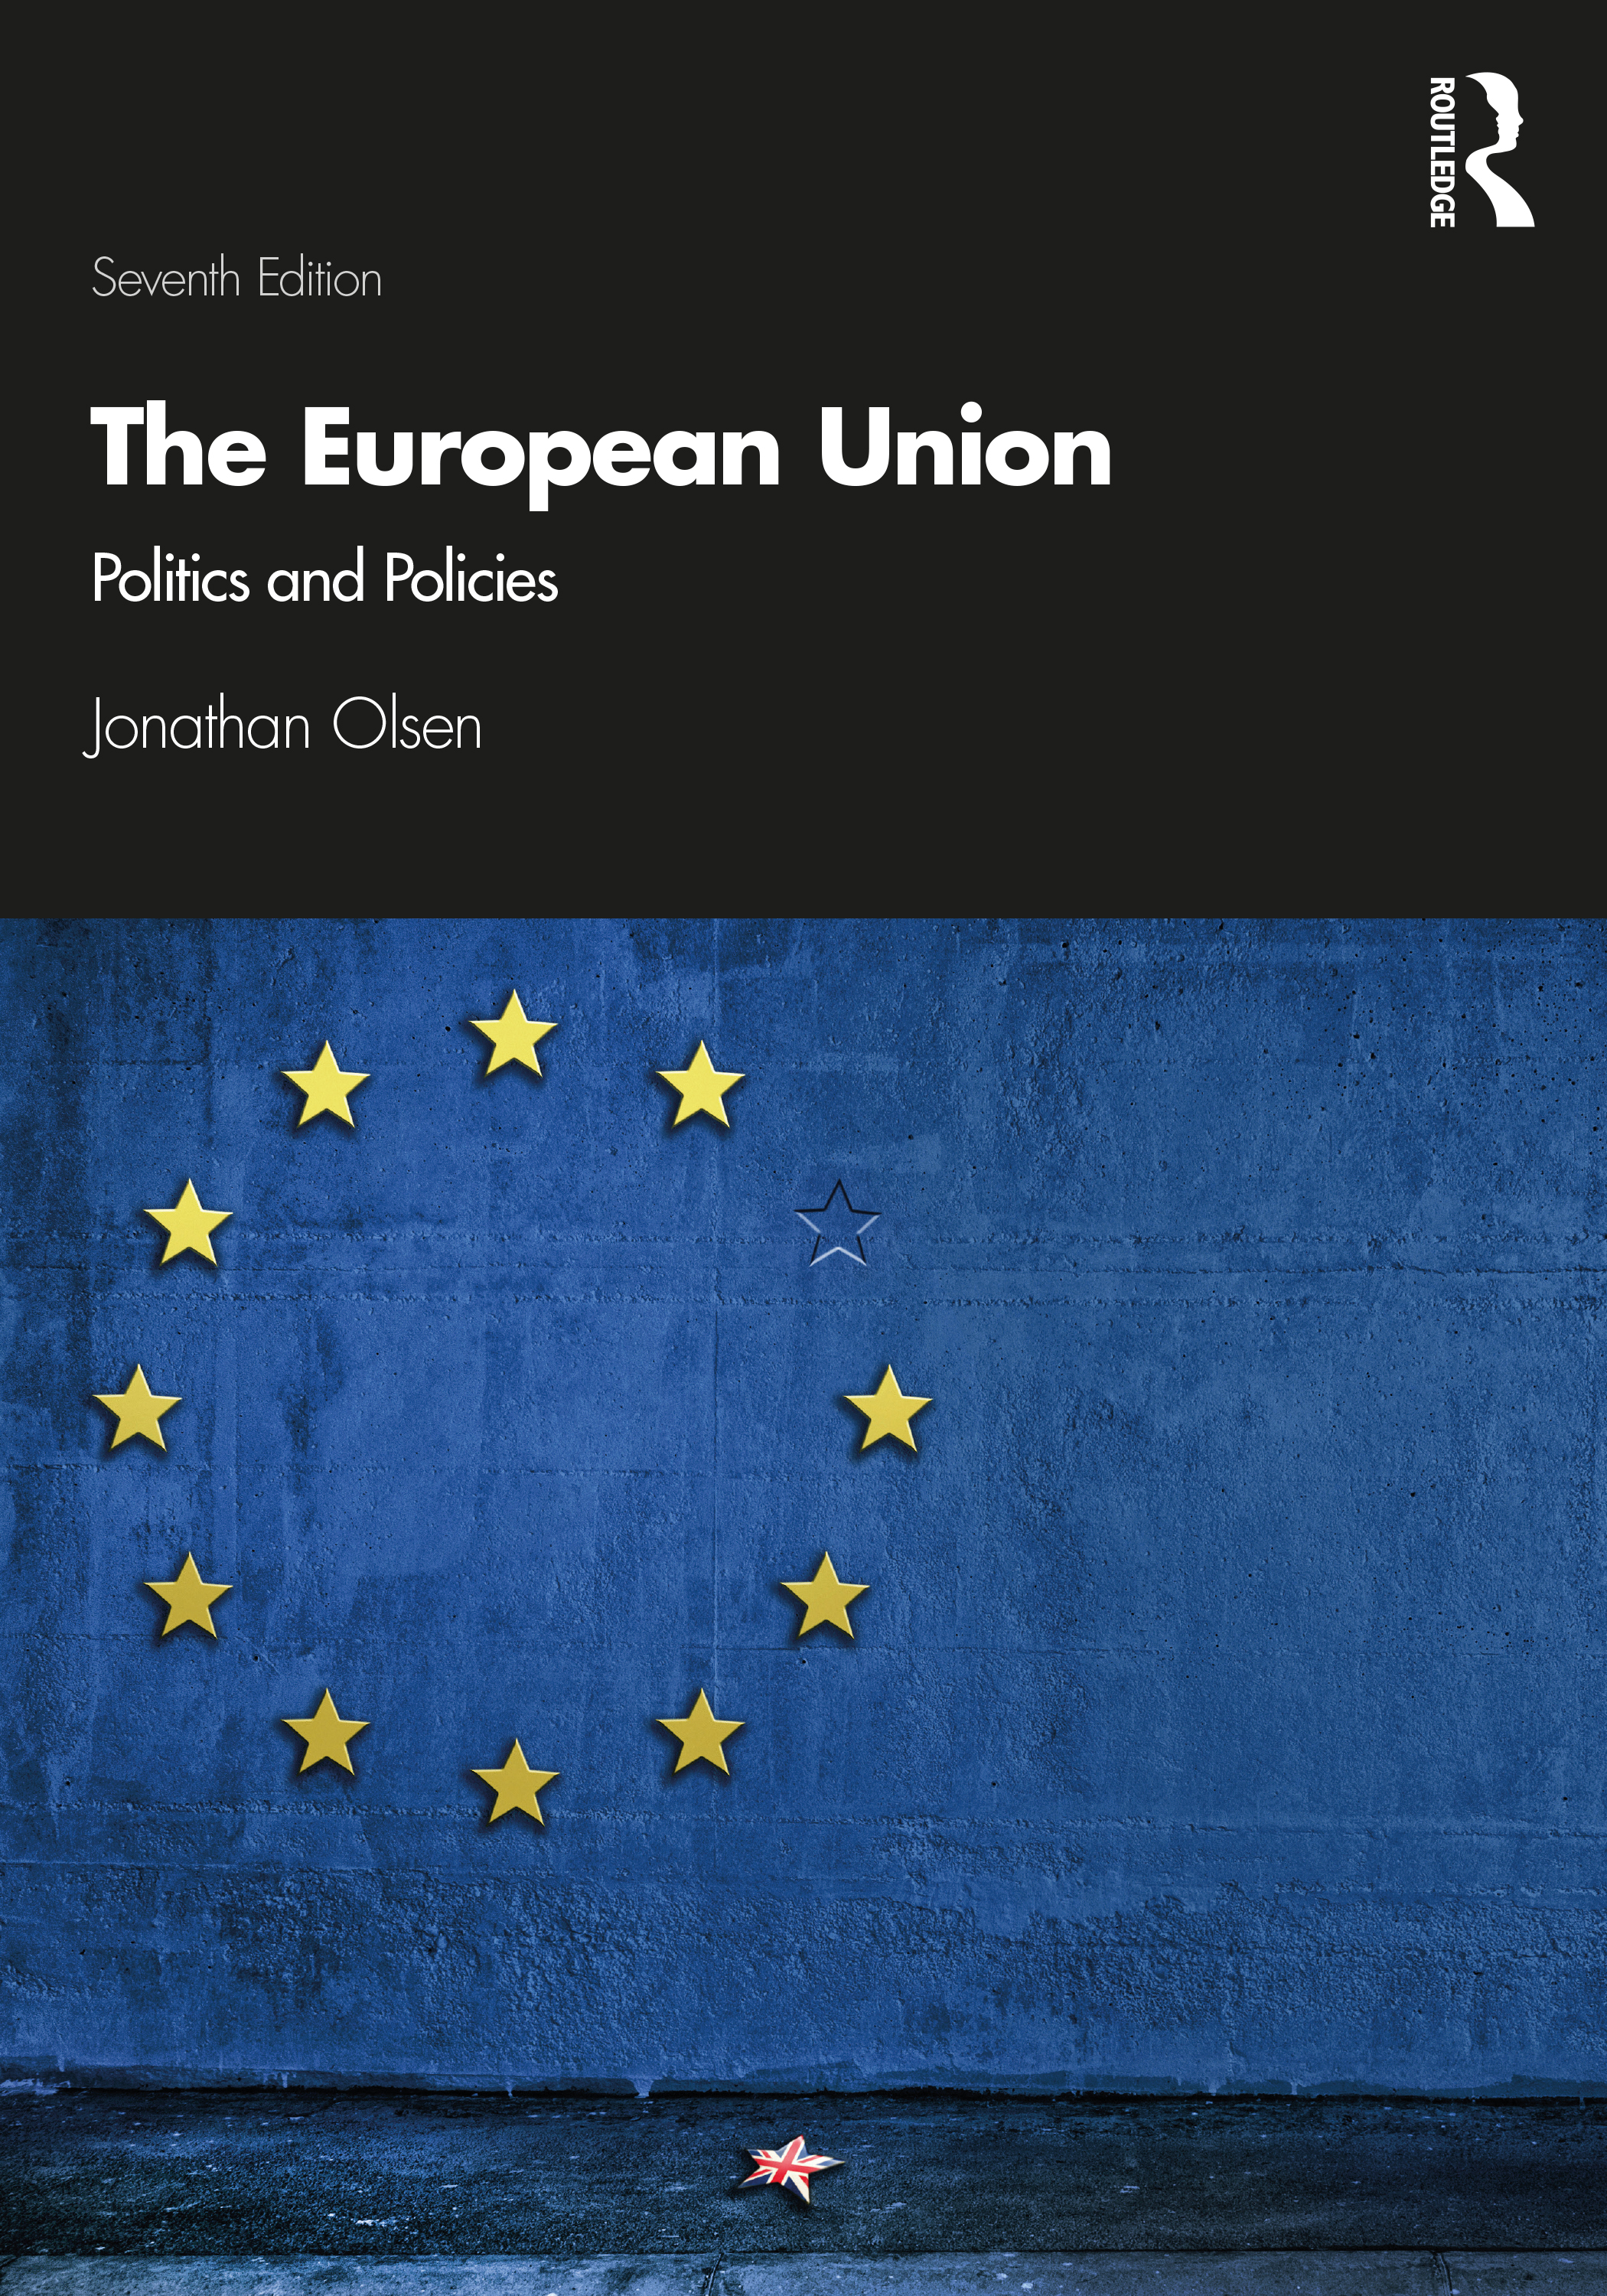 The European Union: Politics and Policies book cover